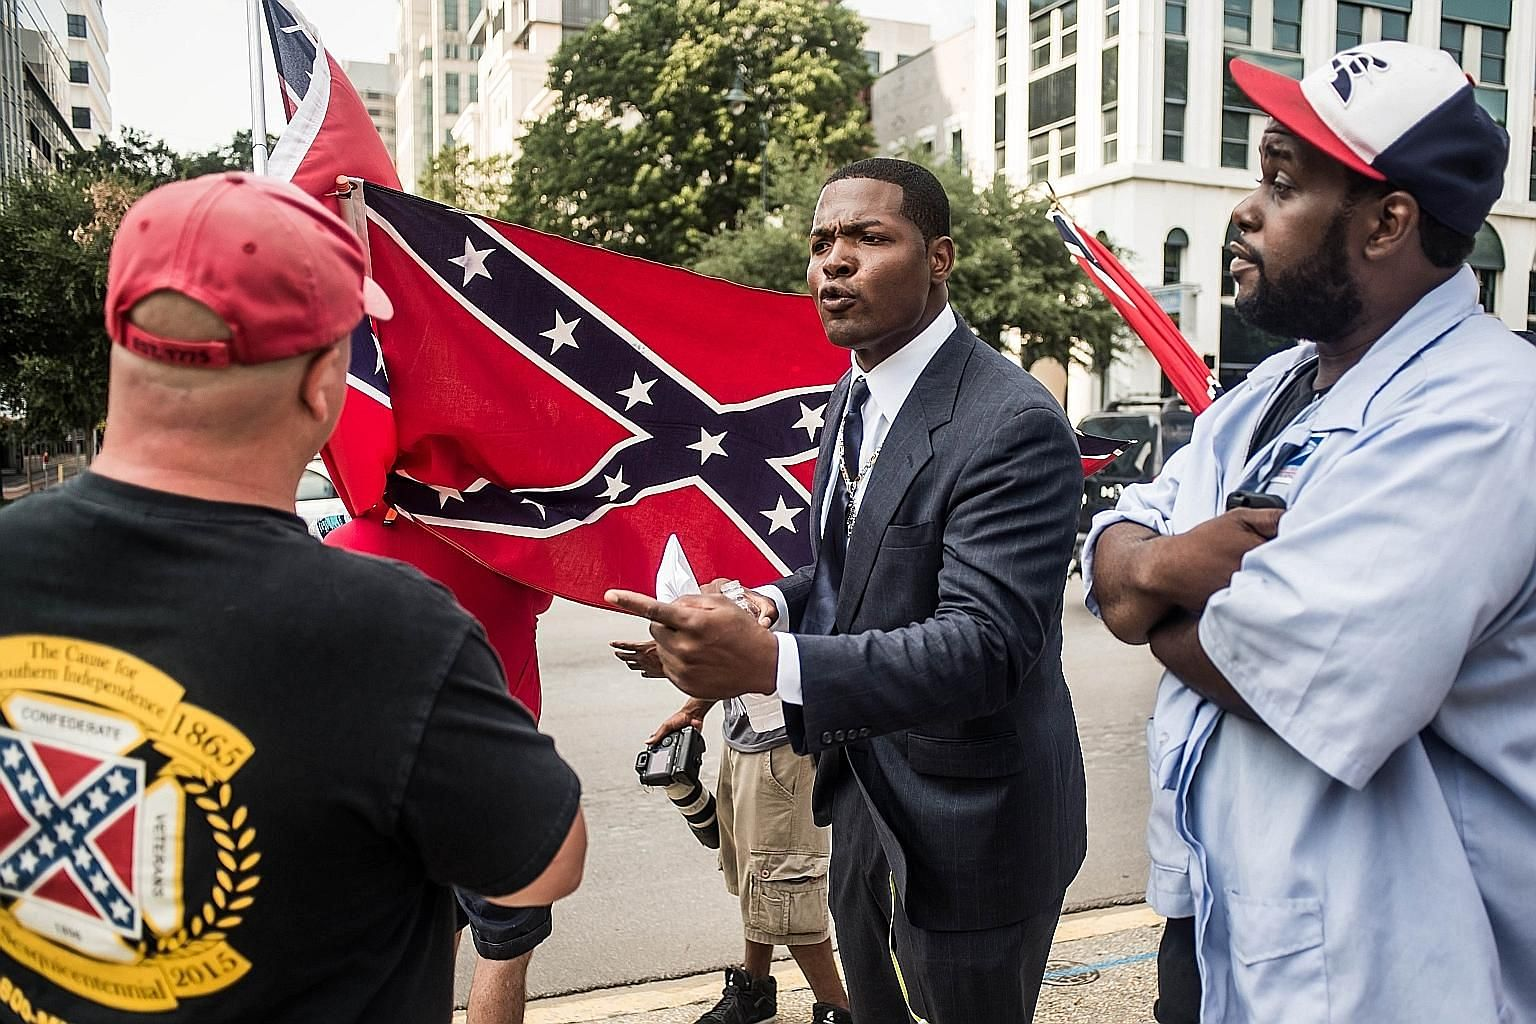 A scene outside the South Carolina State House on Tuesday. The Confederate banner was originally raised atop the building in 1961 in what was described as a commemoration of the centennial of the Civil War. Others, however, saw it as a slap in the fa